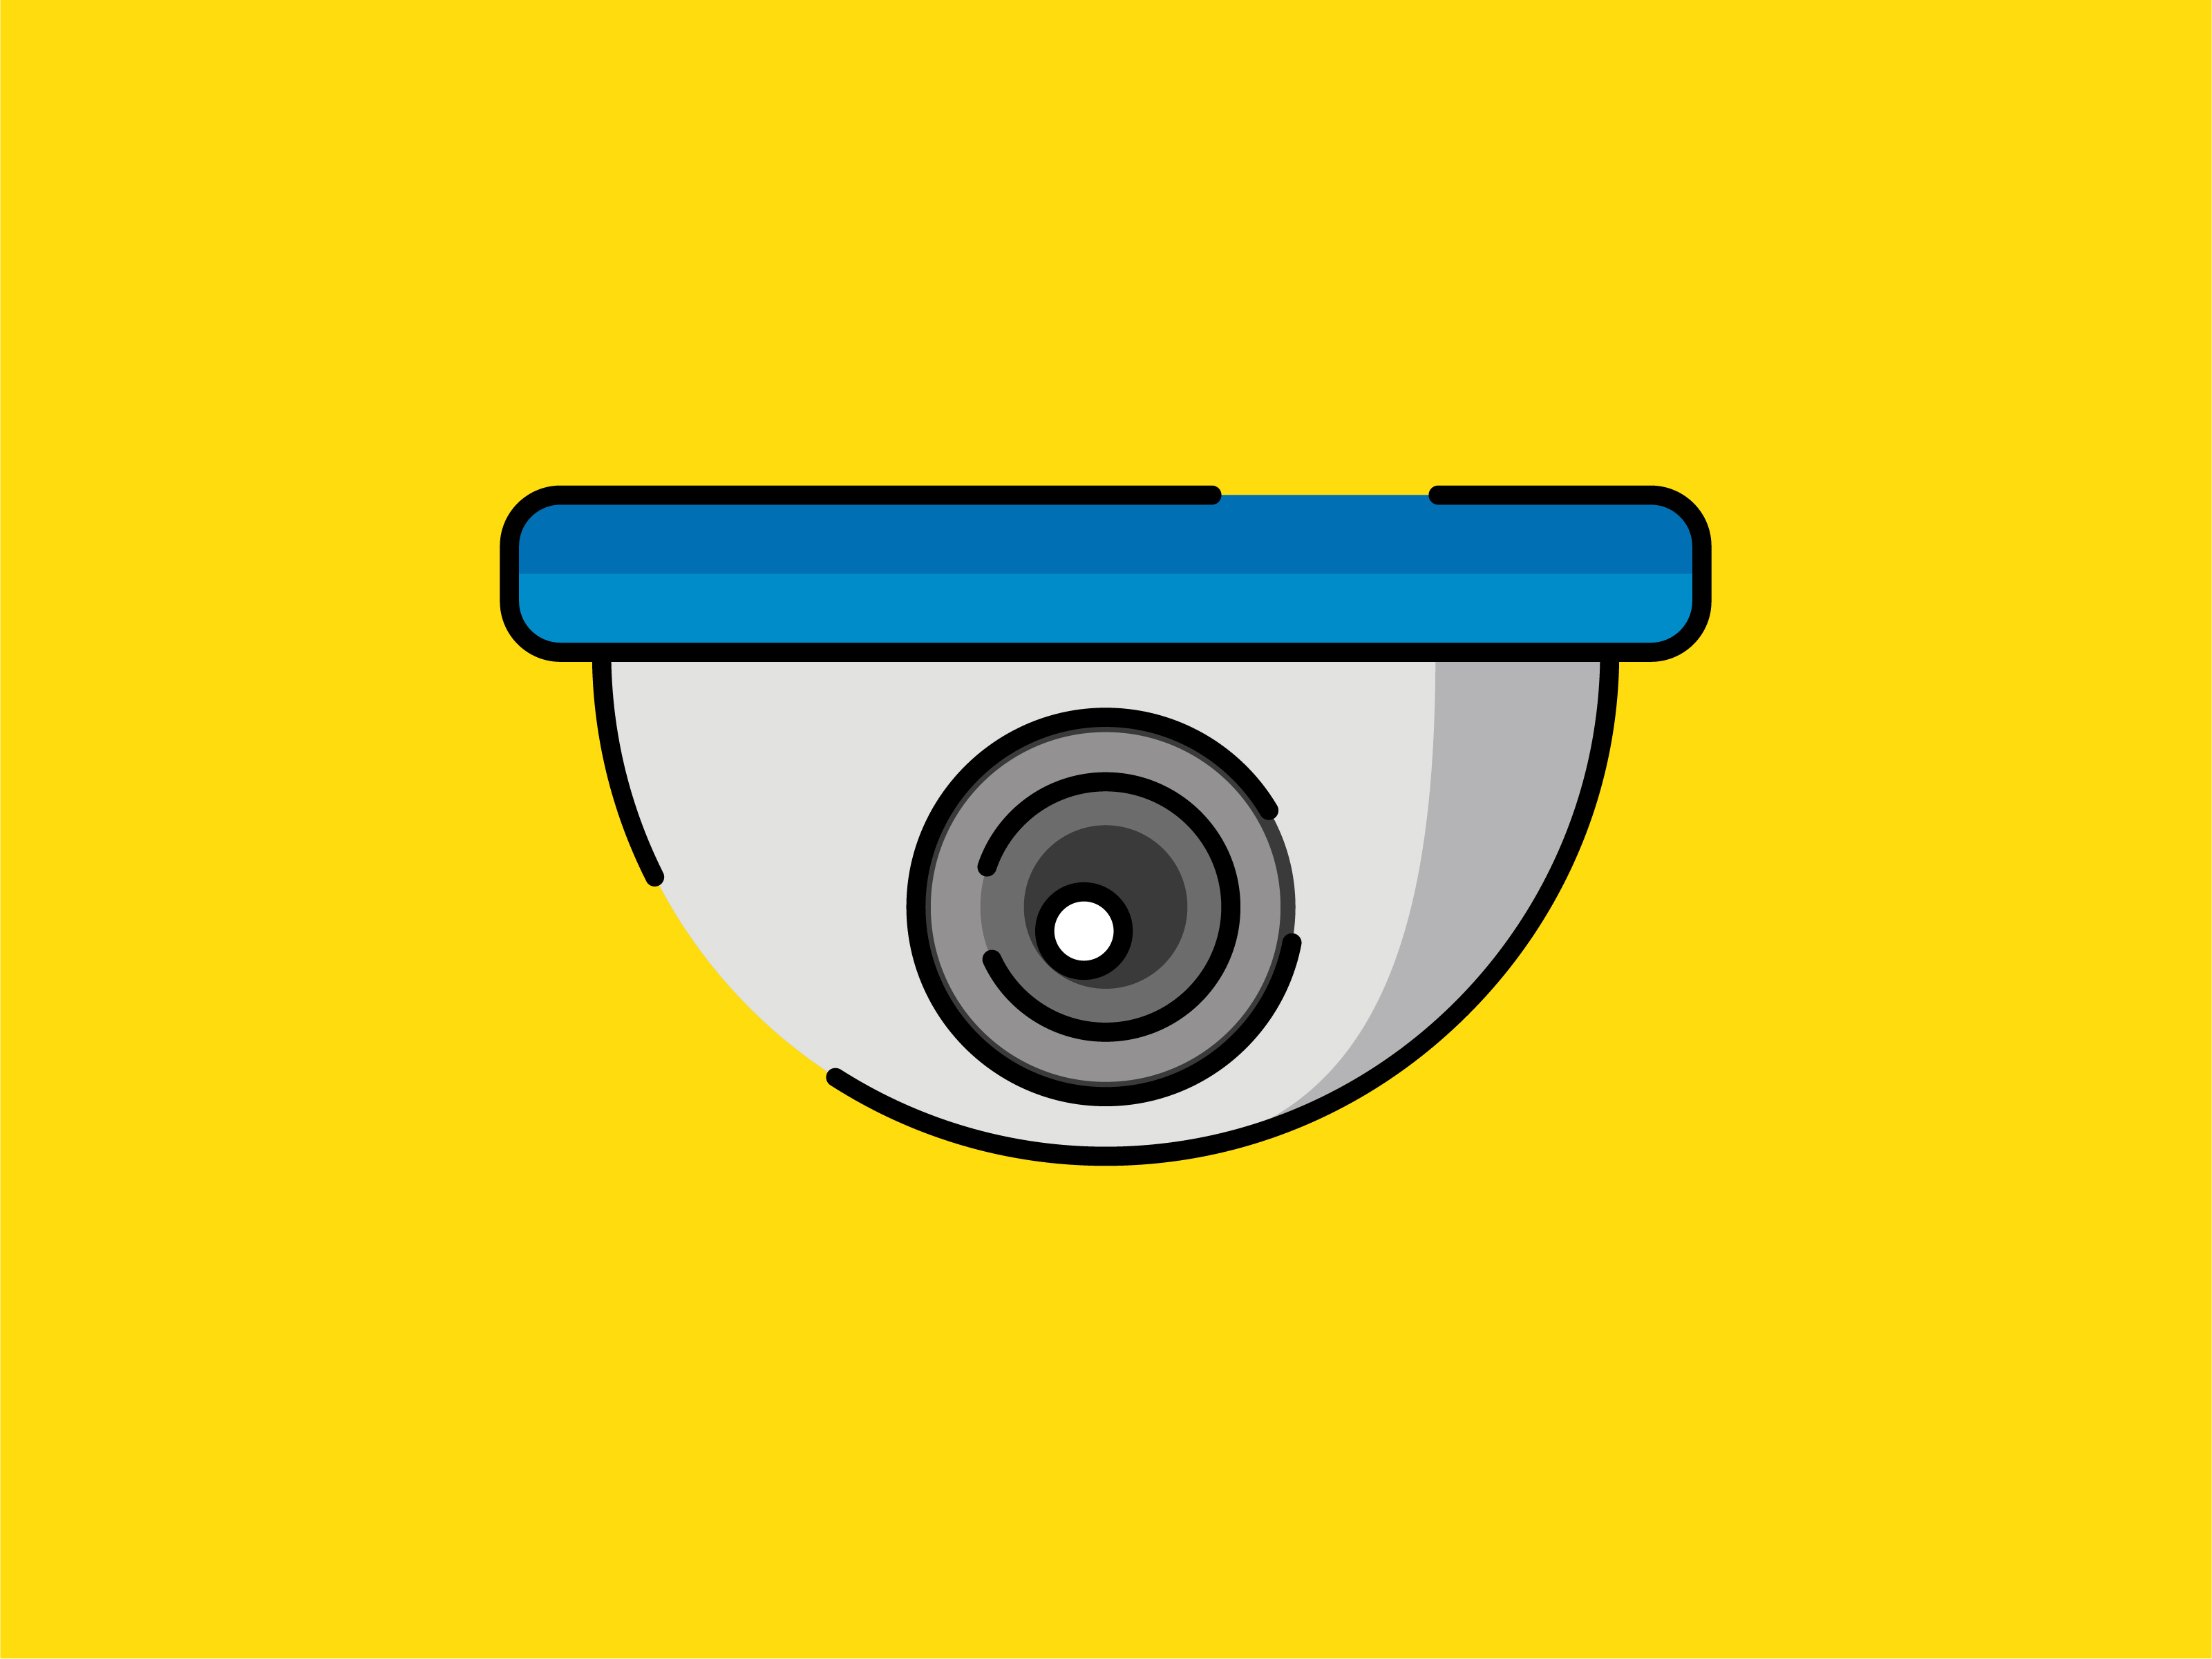 Download Free Icon Cctv Striped Line Graphic By Meandmydate Creative Fabrica for Cricut Explore, Silhouette and other cutting machines.